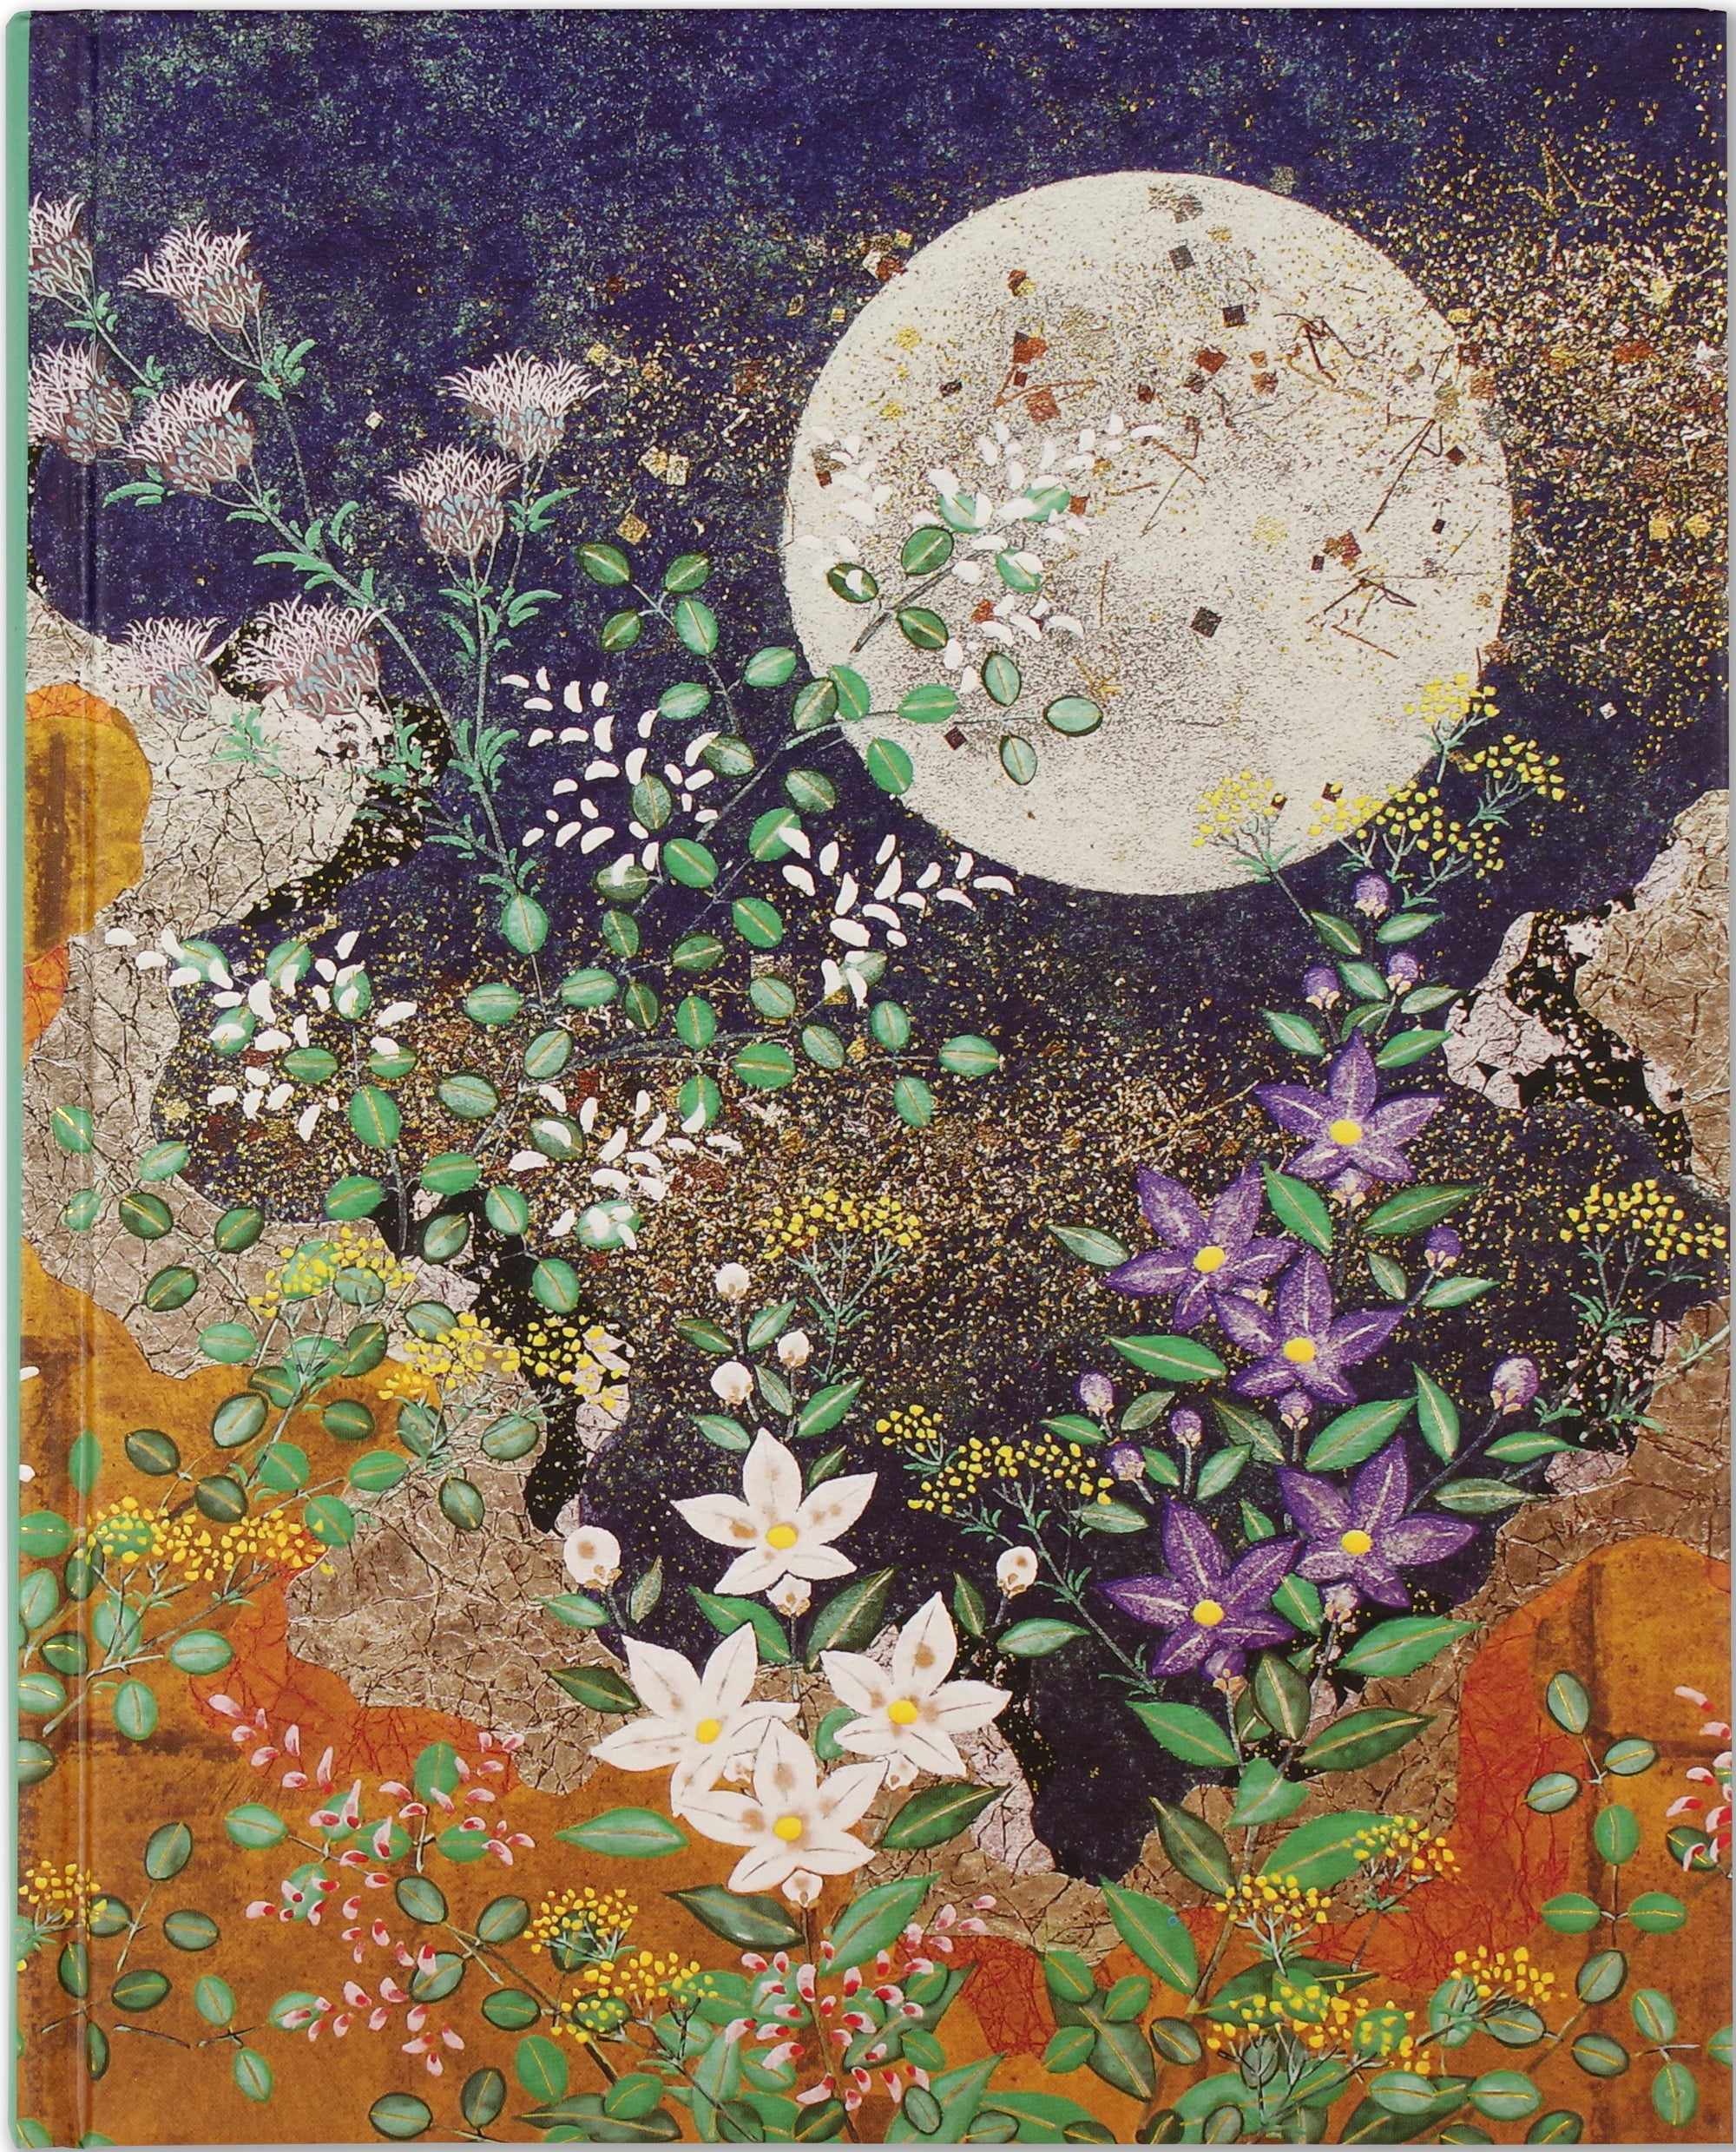 Autumn Moon Journal - Heart of the Home PA